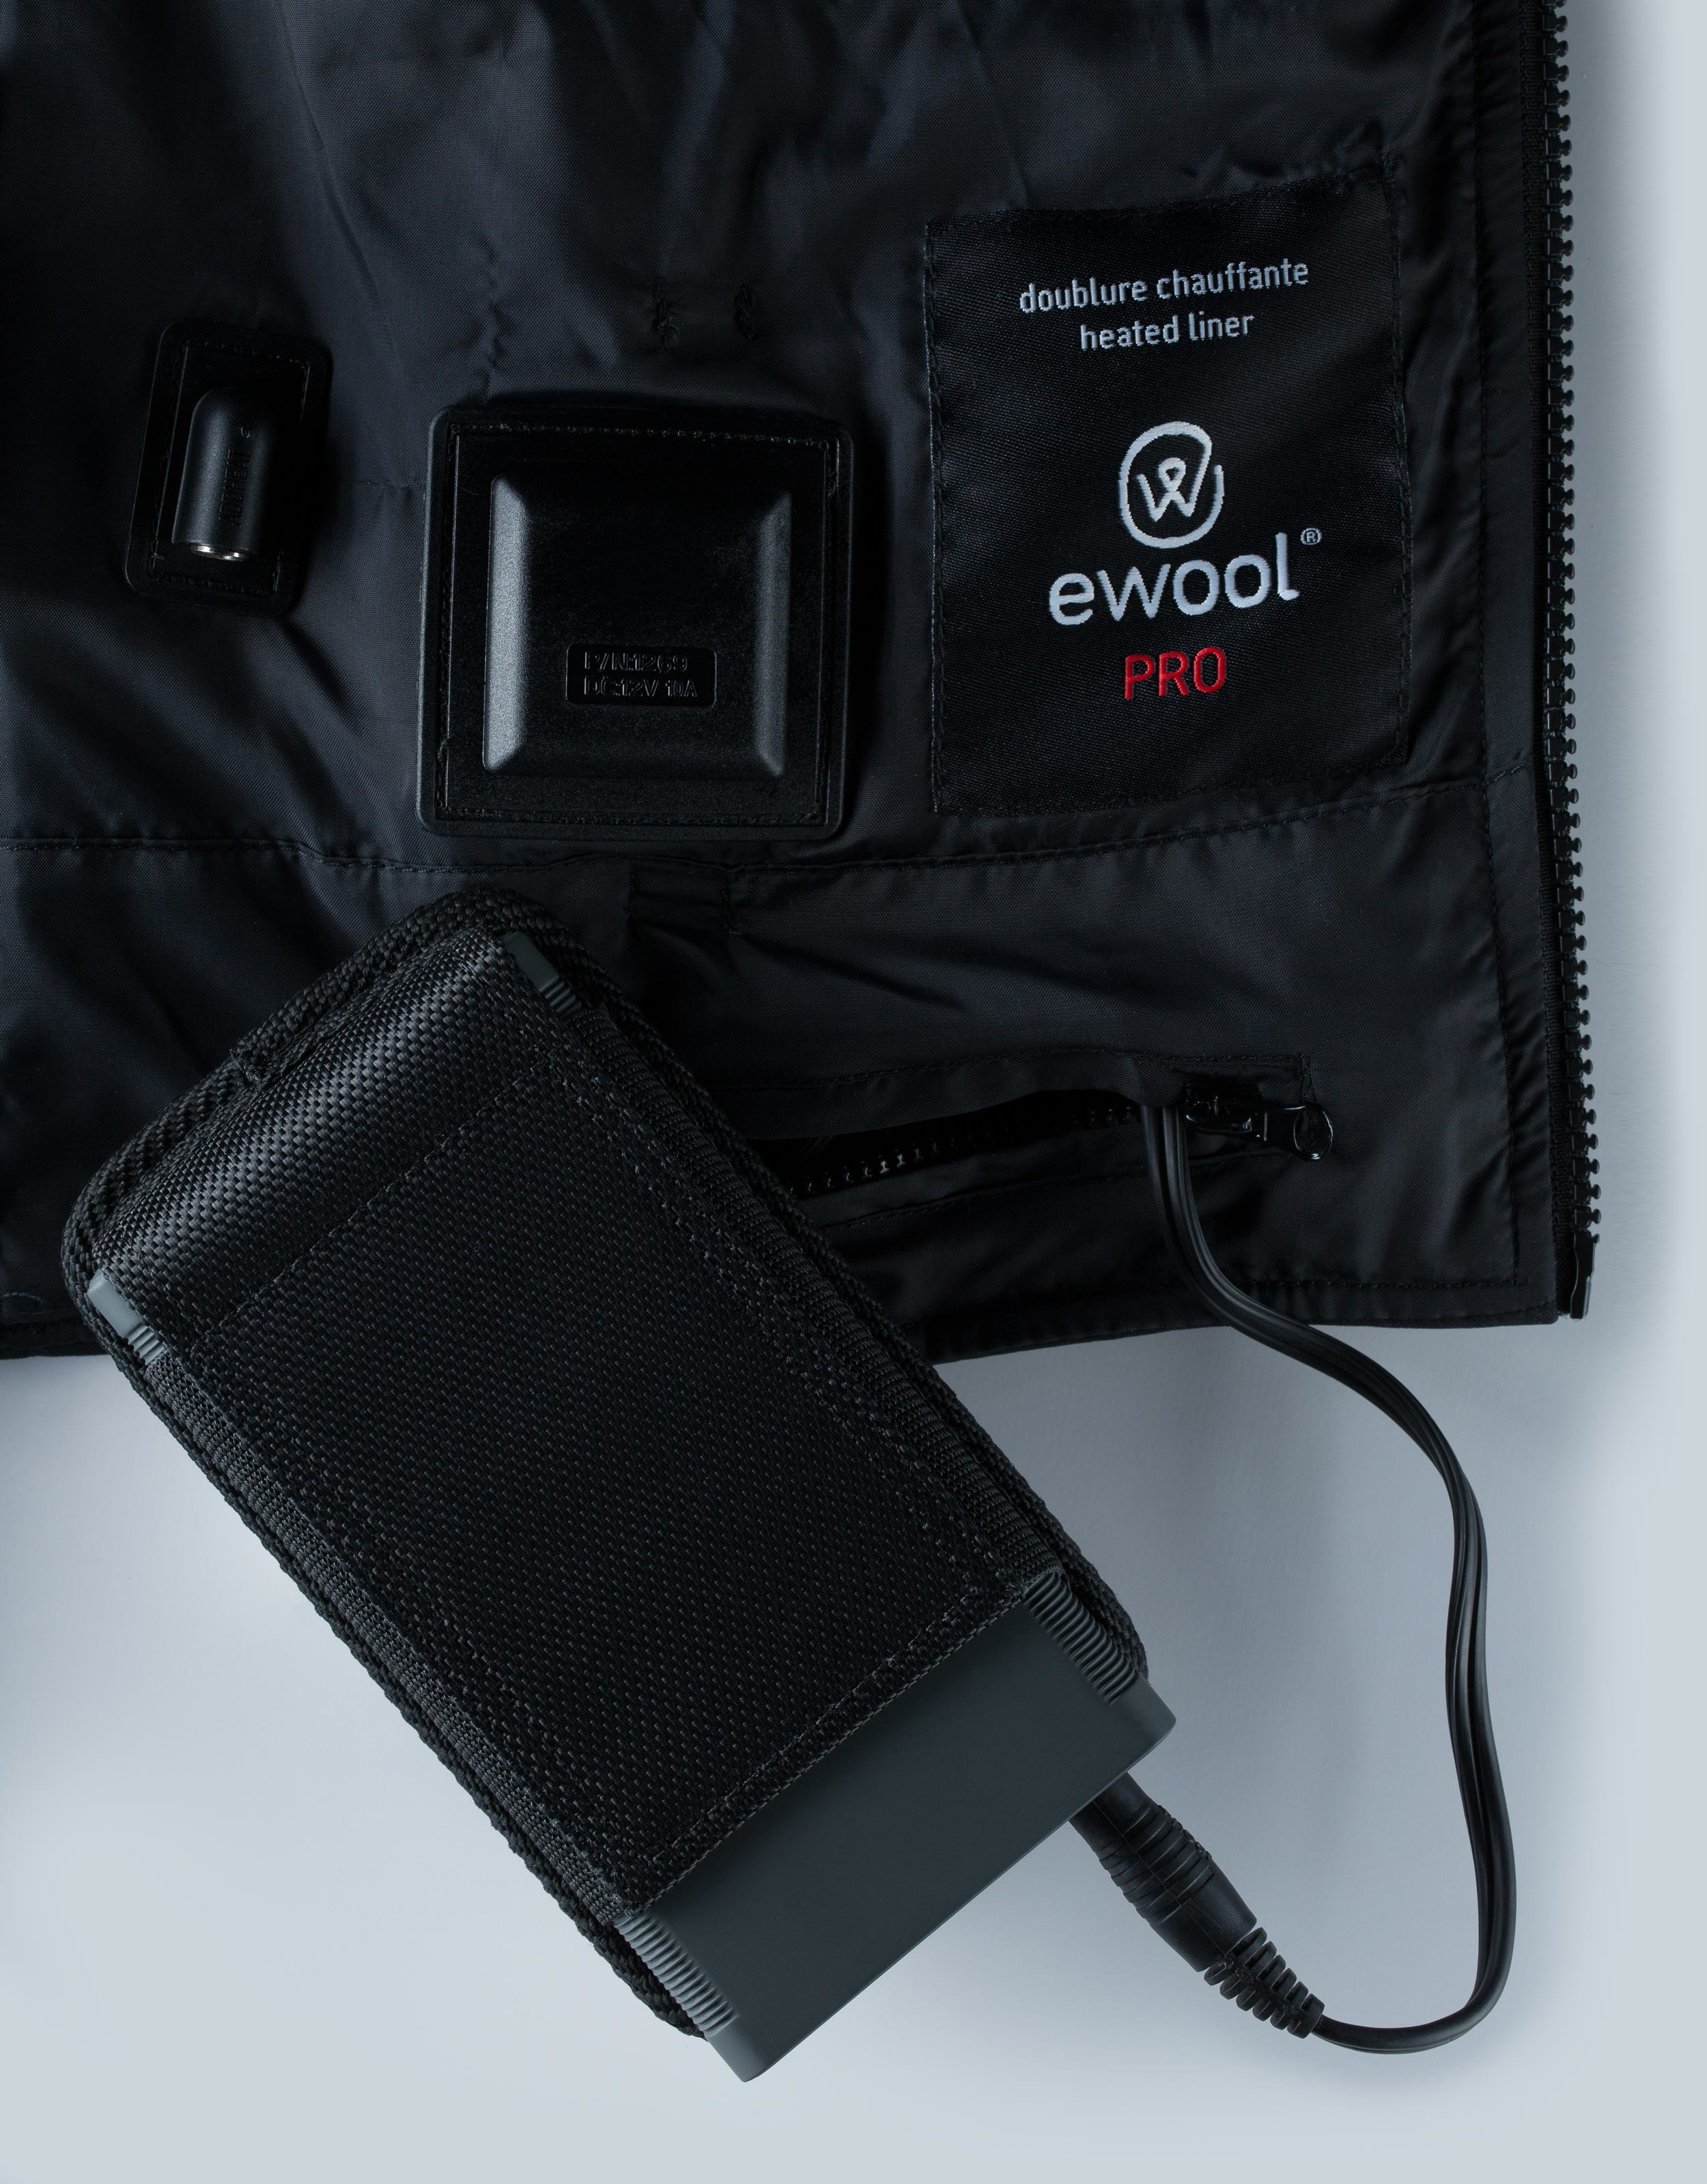 Inside ewool® PRO vest with battery plugged to auxiliary power cable